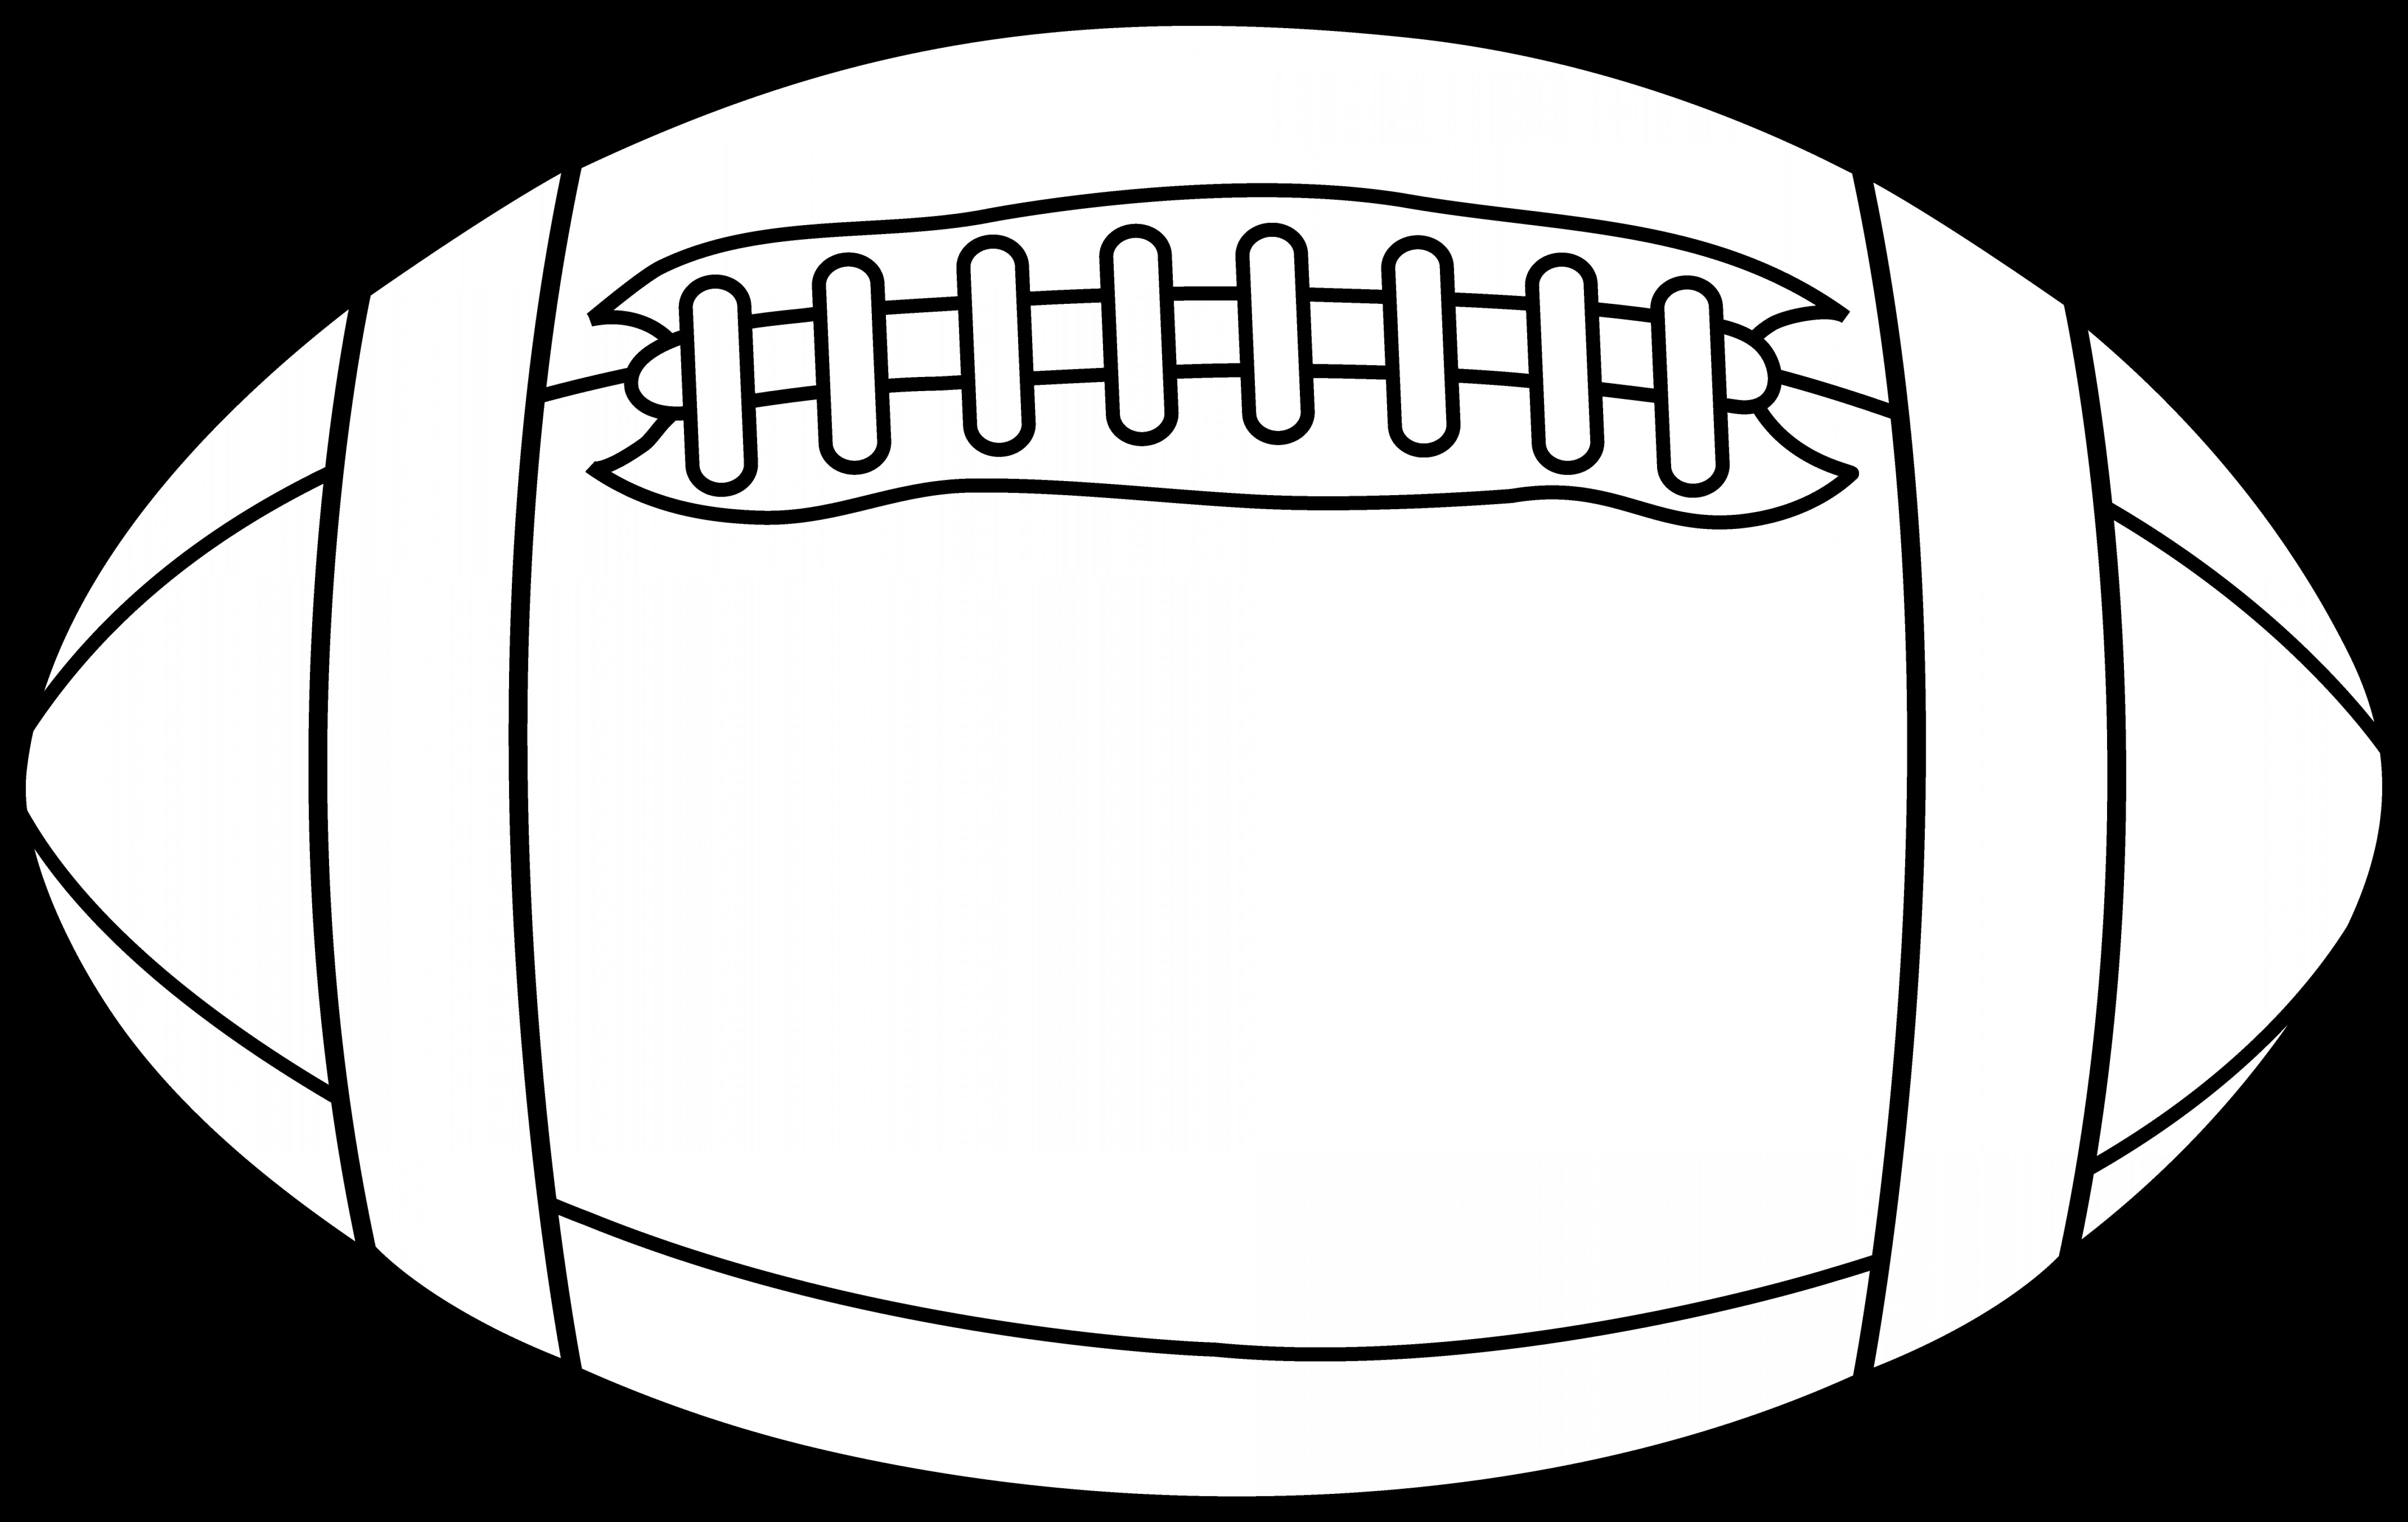 Distressed Football Helmet Vector: Football Laces Clipart Black And White